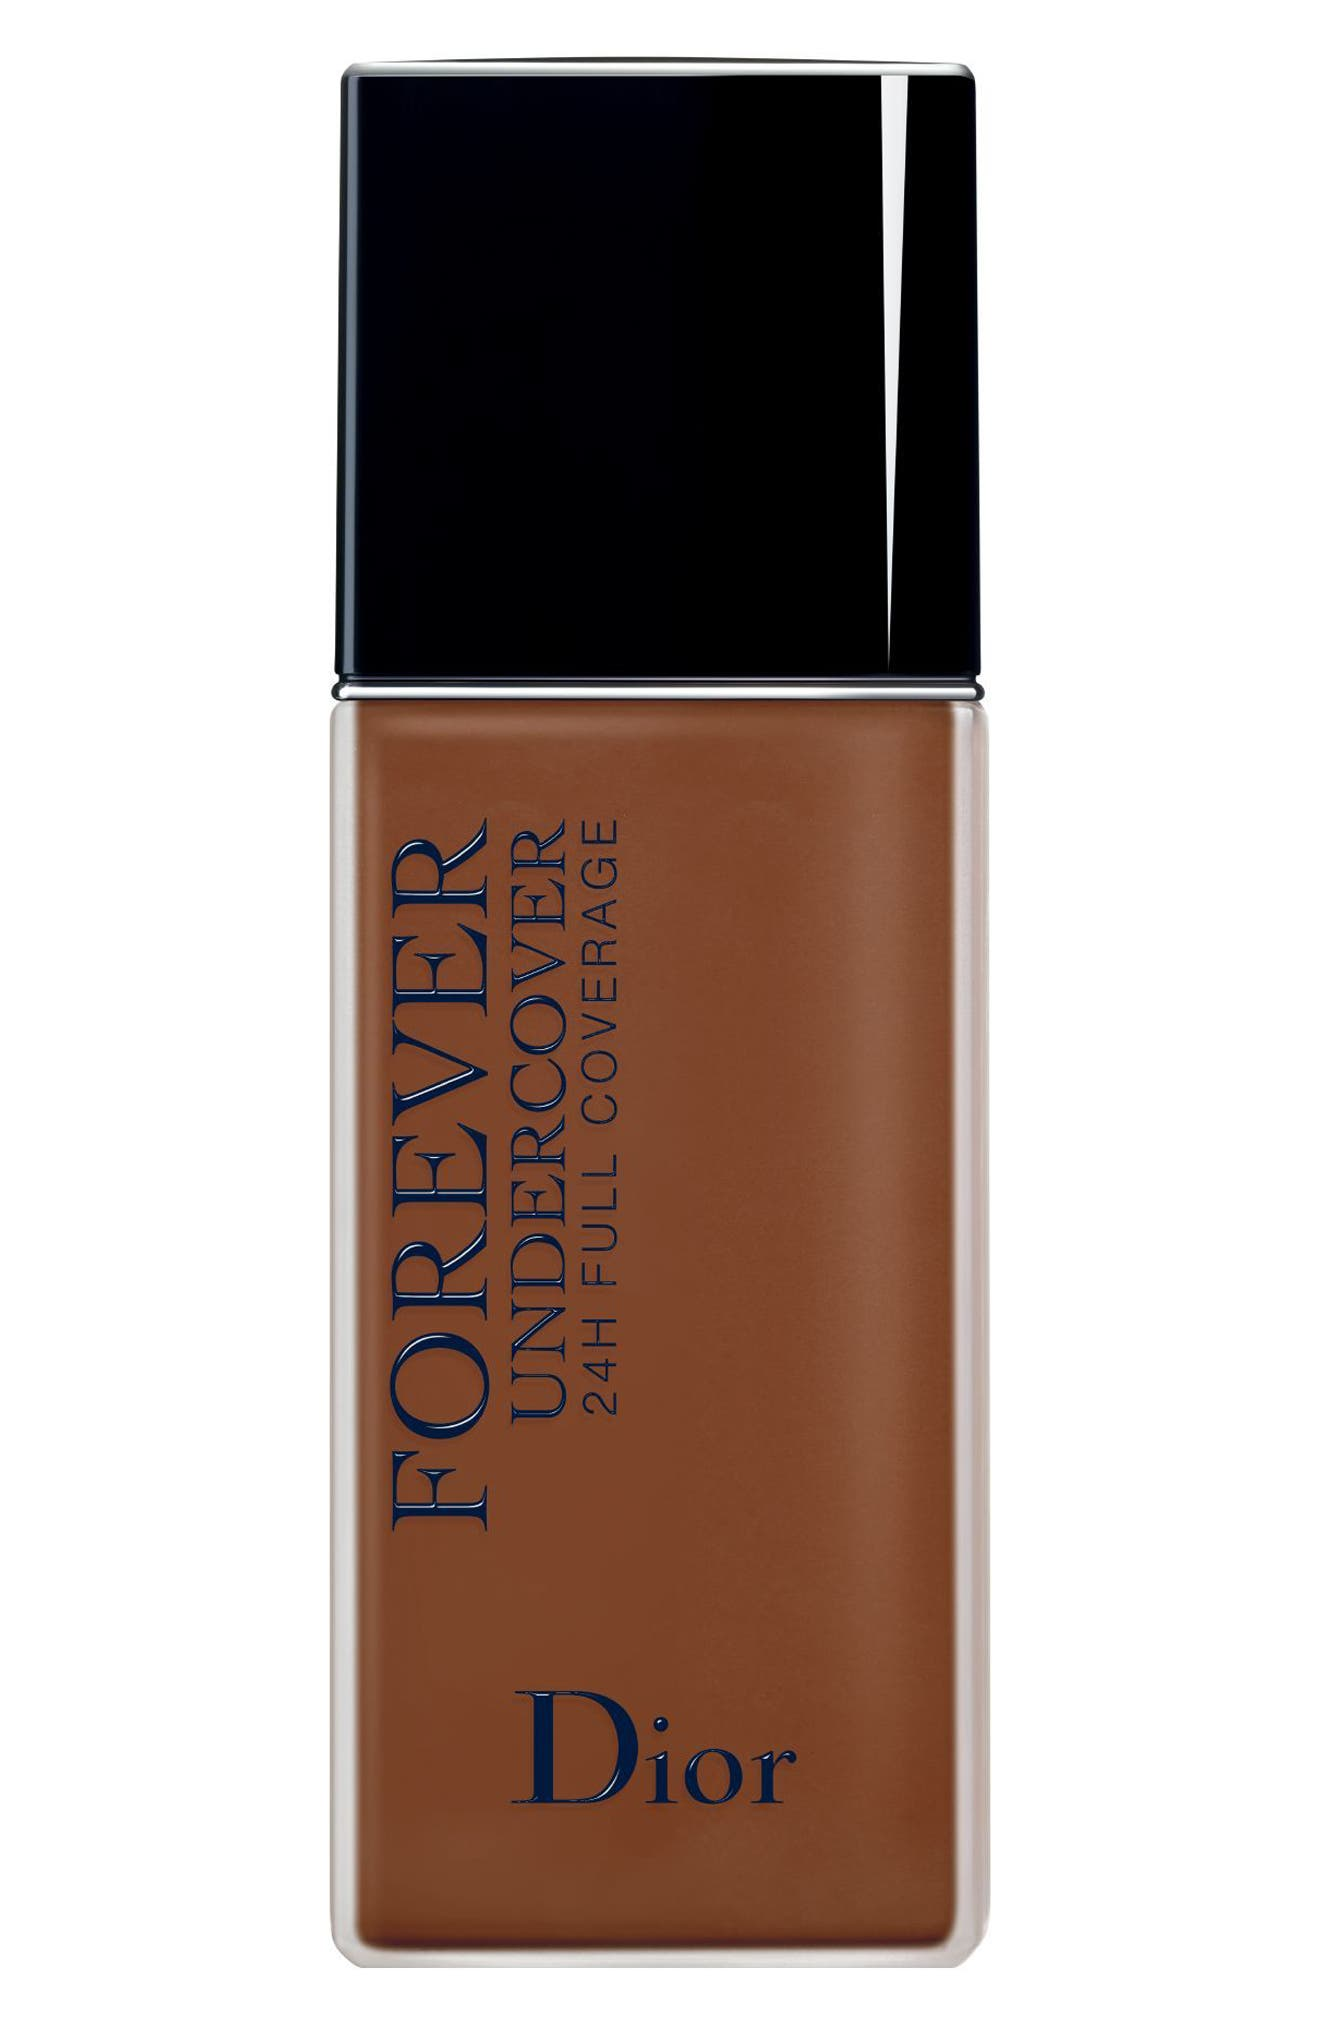 Dior Diorskin Forever Undercover 24-Hour Full Coverage Water-Based Foundation - 070 Dark Brown